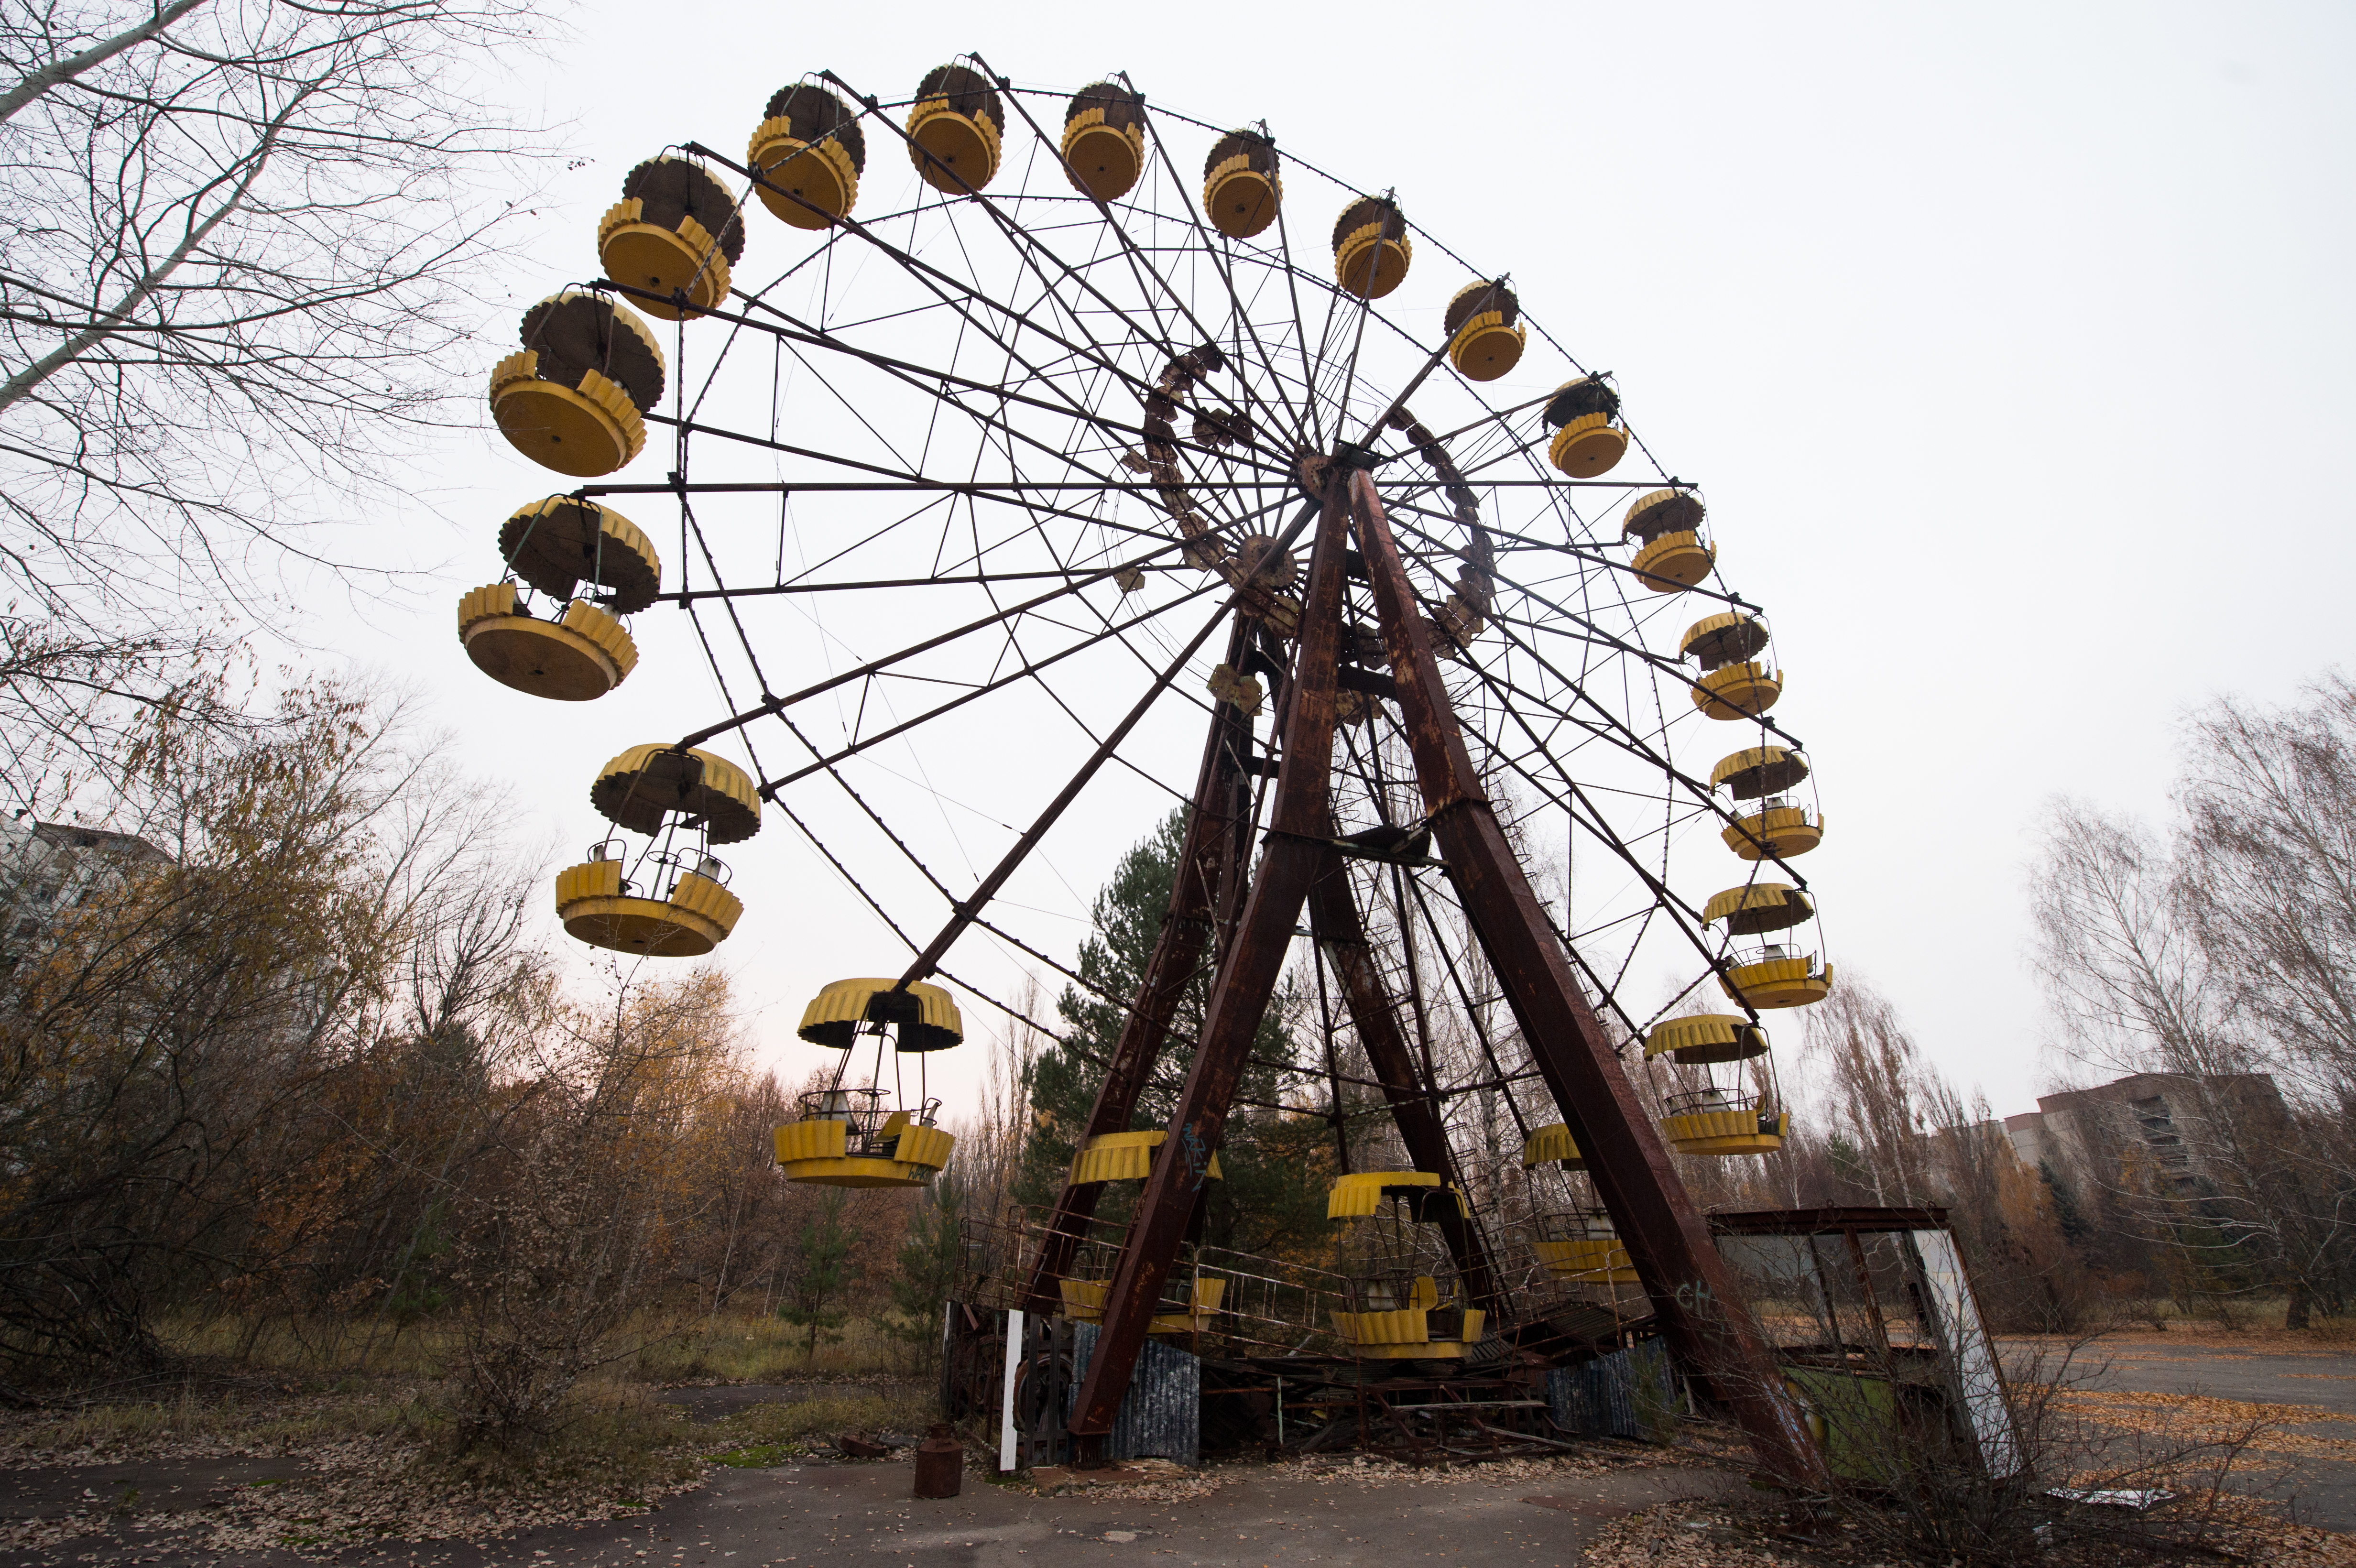 HBO Chernobyl creator asks tourists to be respectful